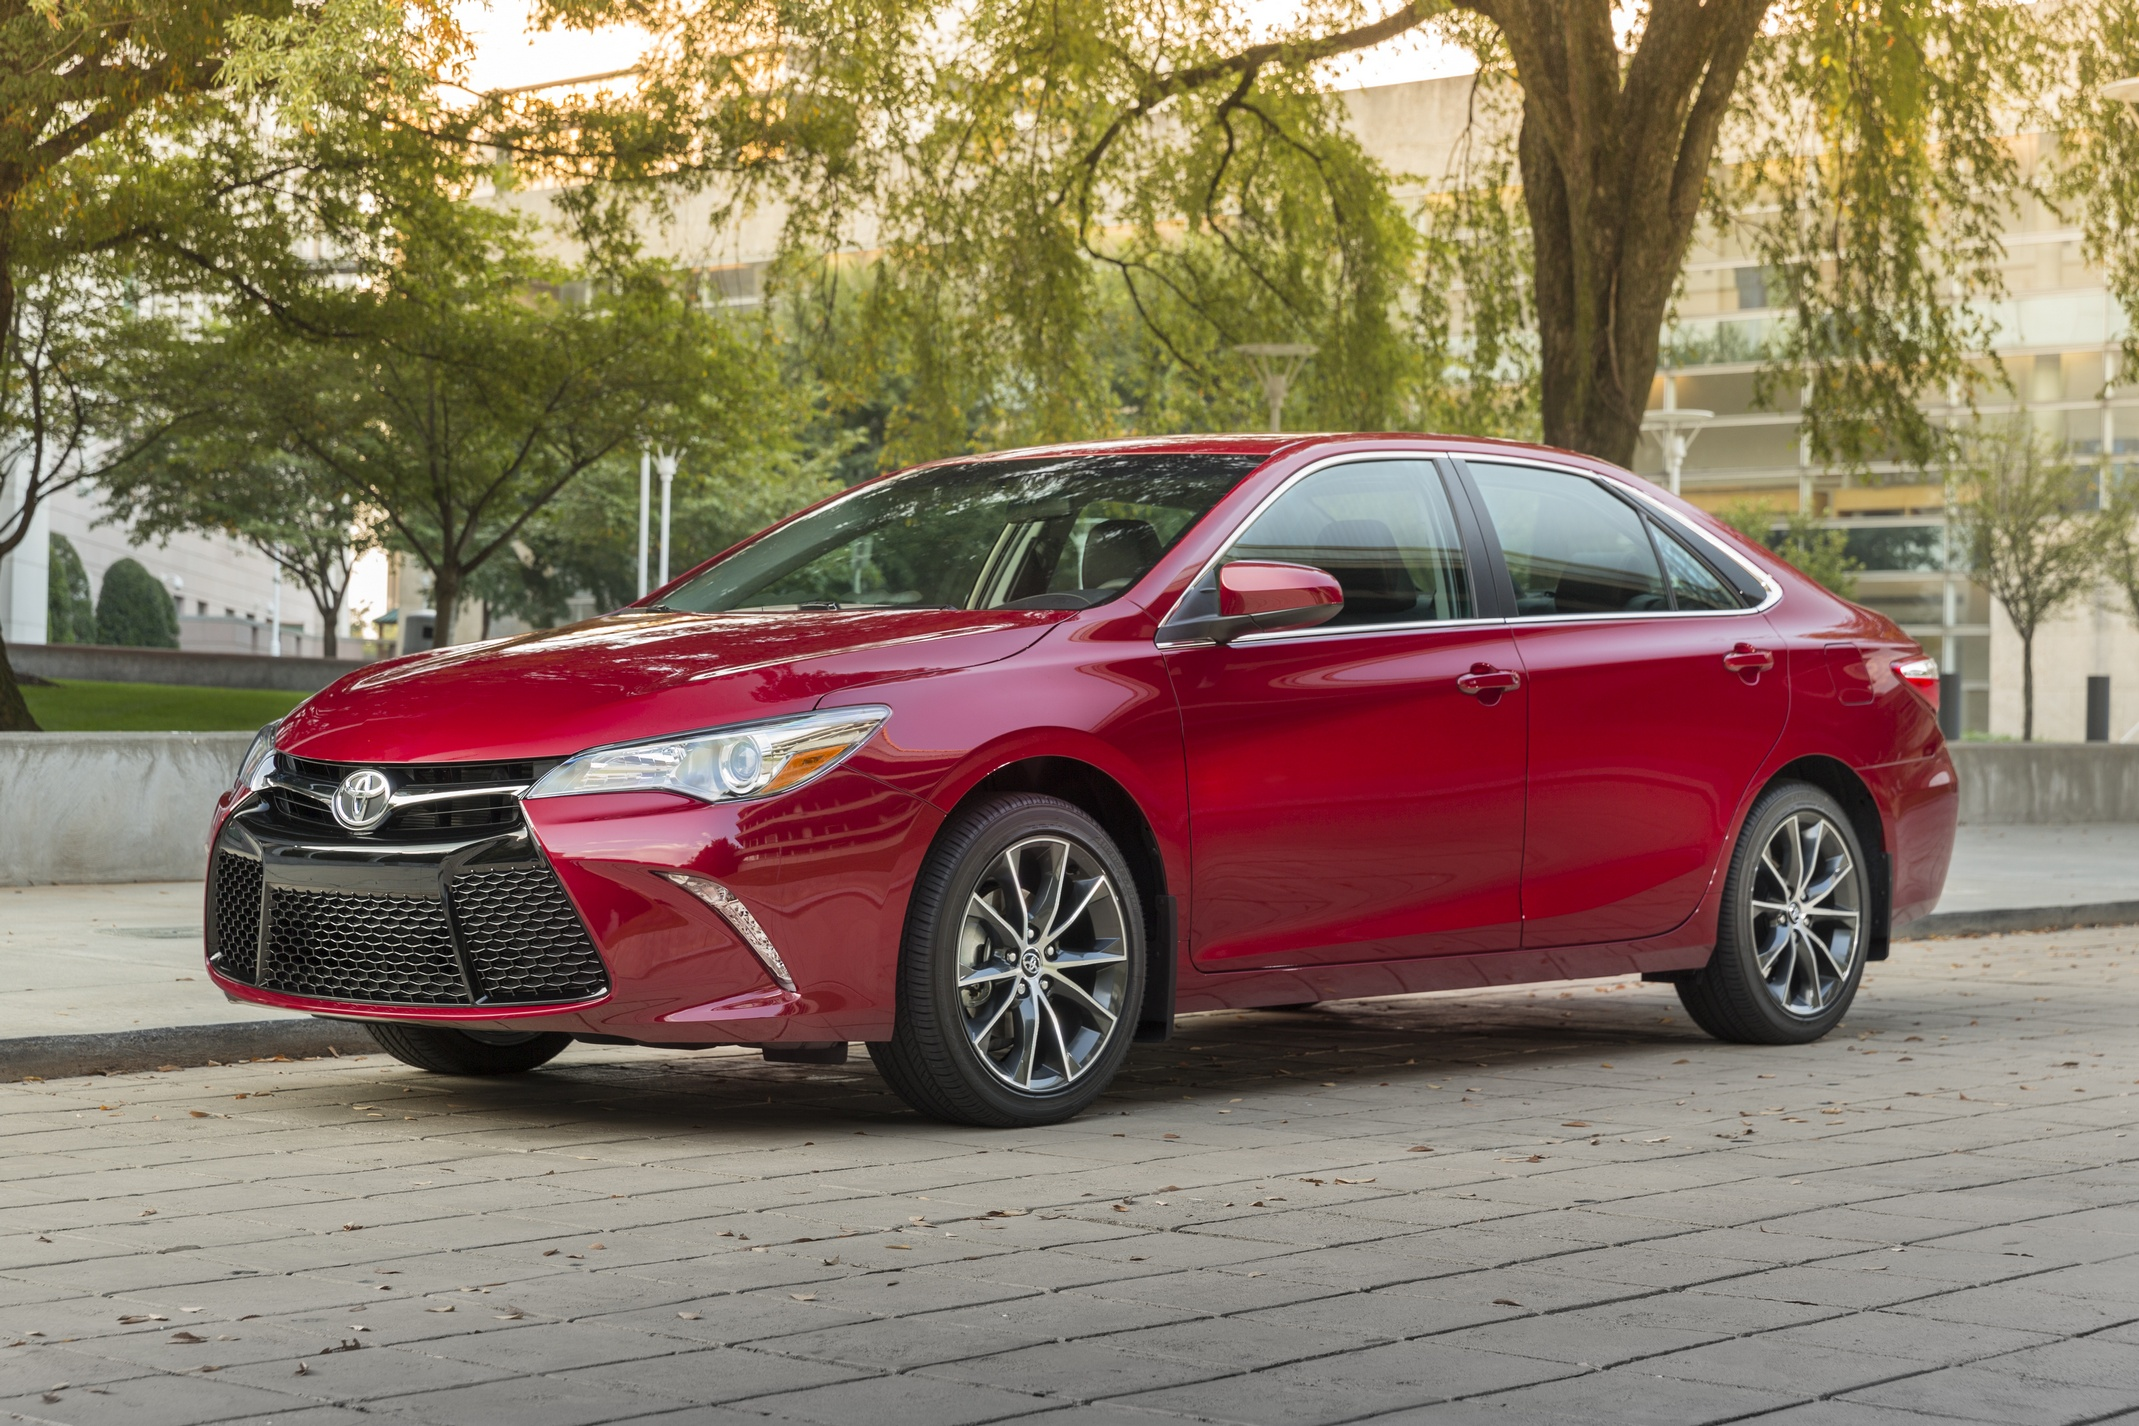 2016 honda accord and toyota camry to get turbo power ecolodriver. Black Bedroom Furniture Sets. Home Design Ideas